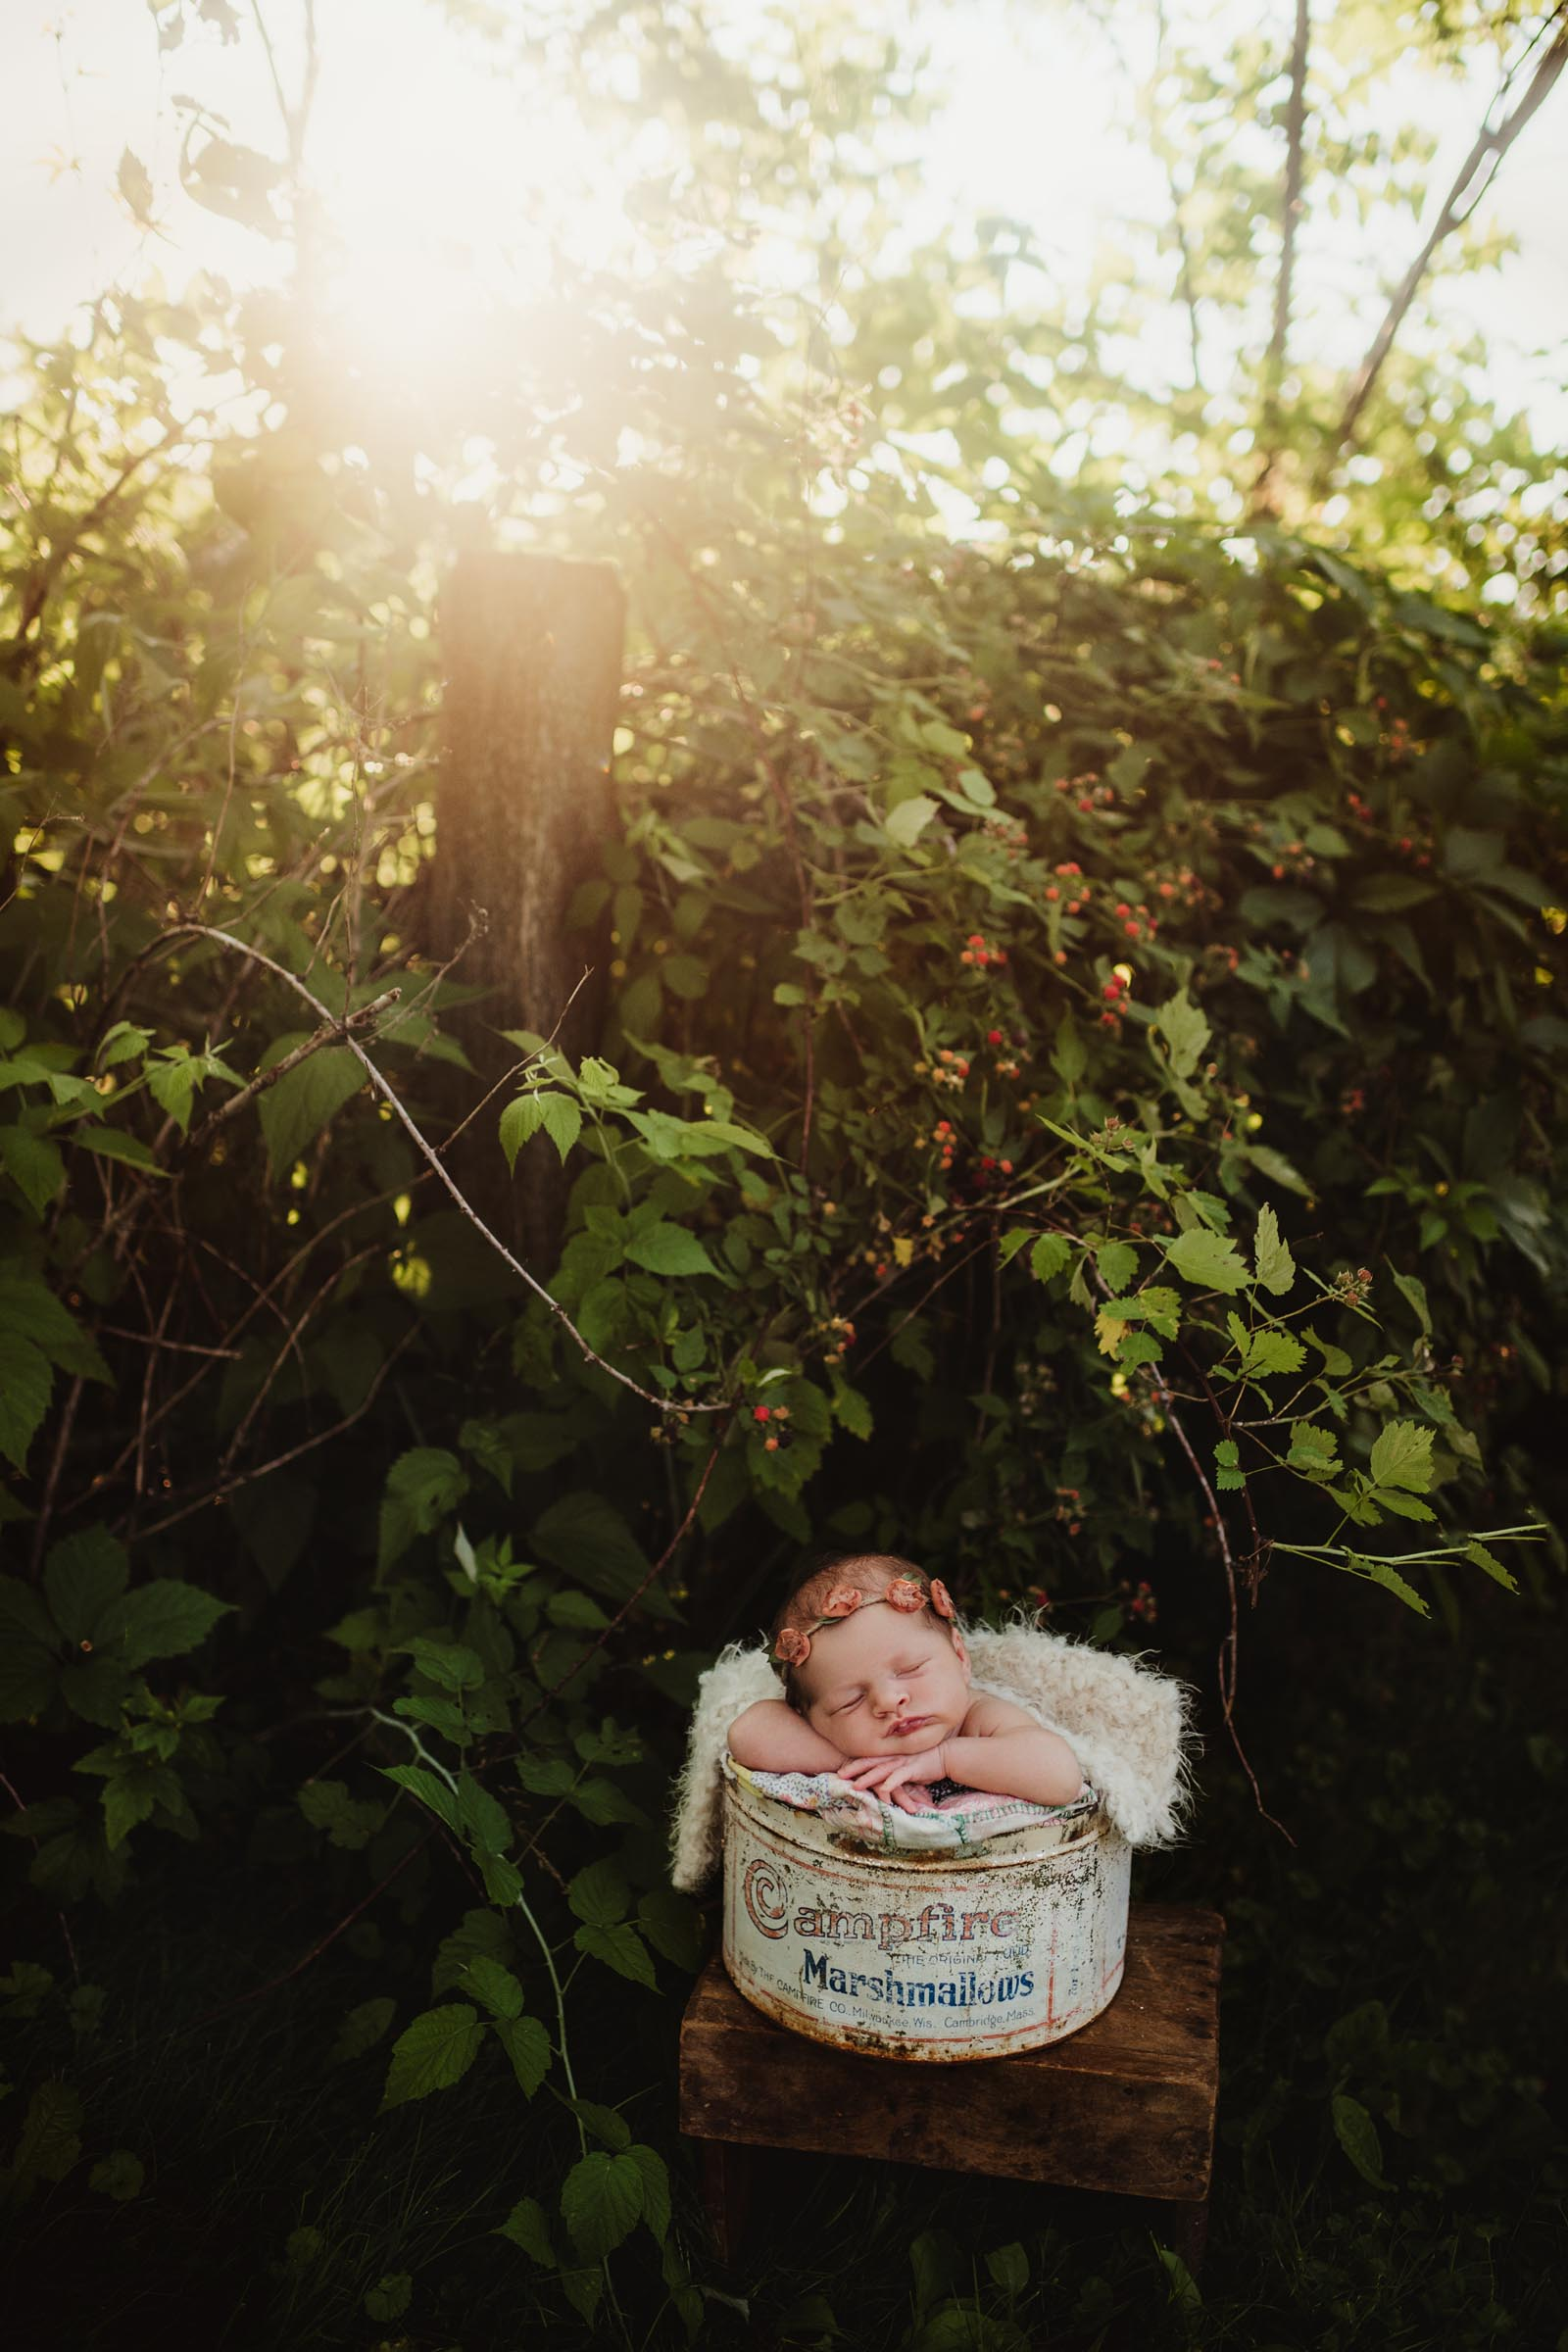 baby sleeping in a bucket at sunset outside